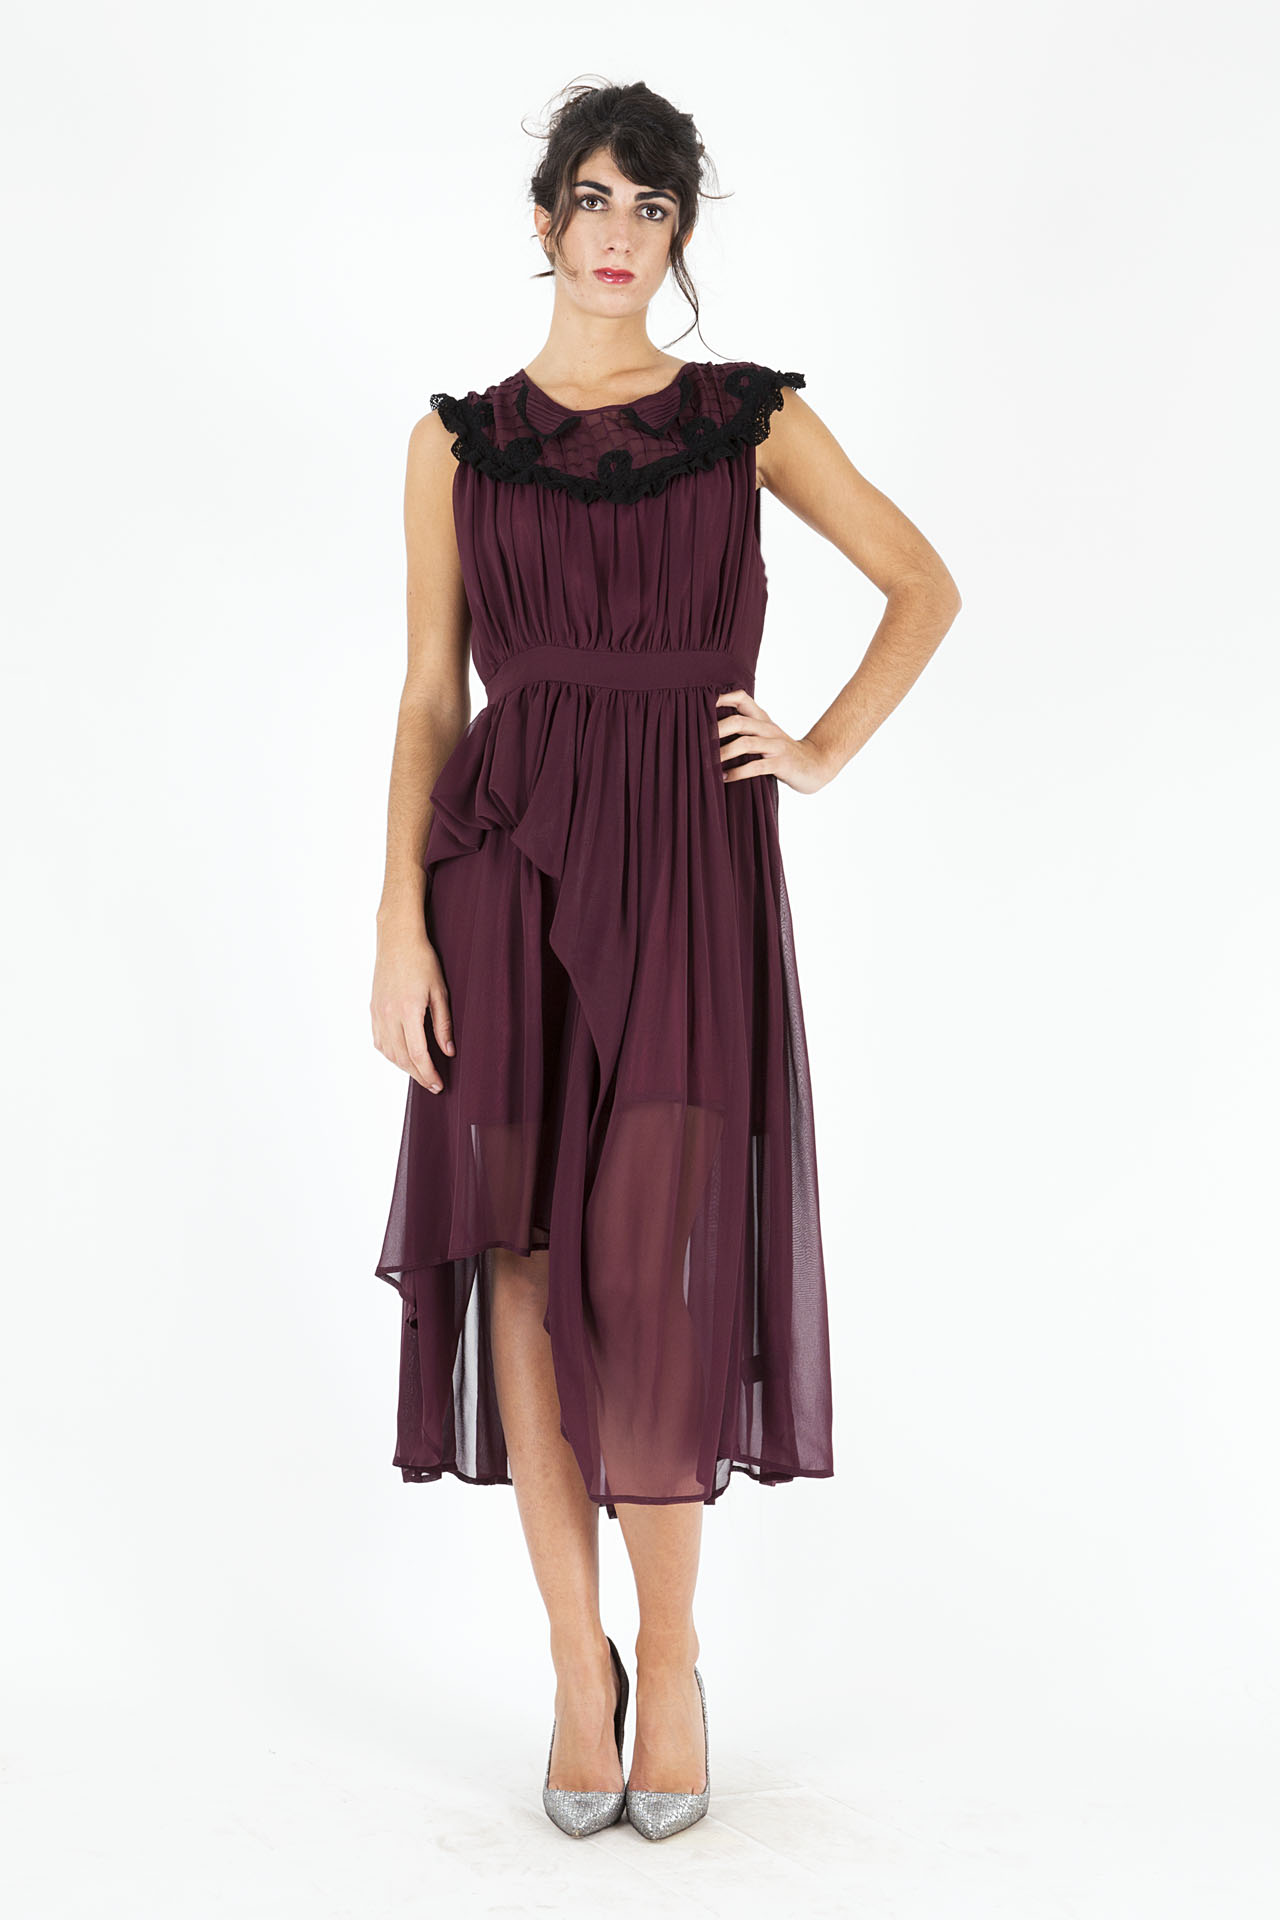 innovative design 5bc61 ceba7 Abito bordeaux Dolores Hitched - DressYouCan